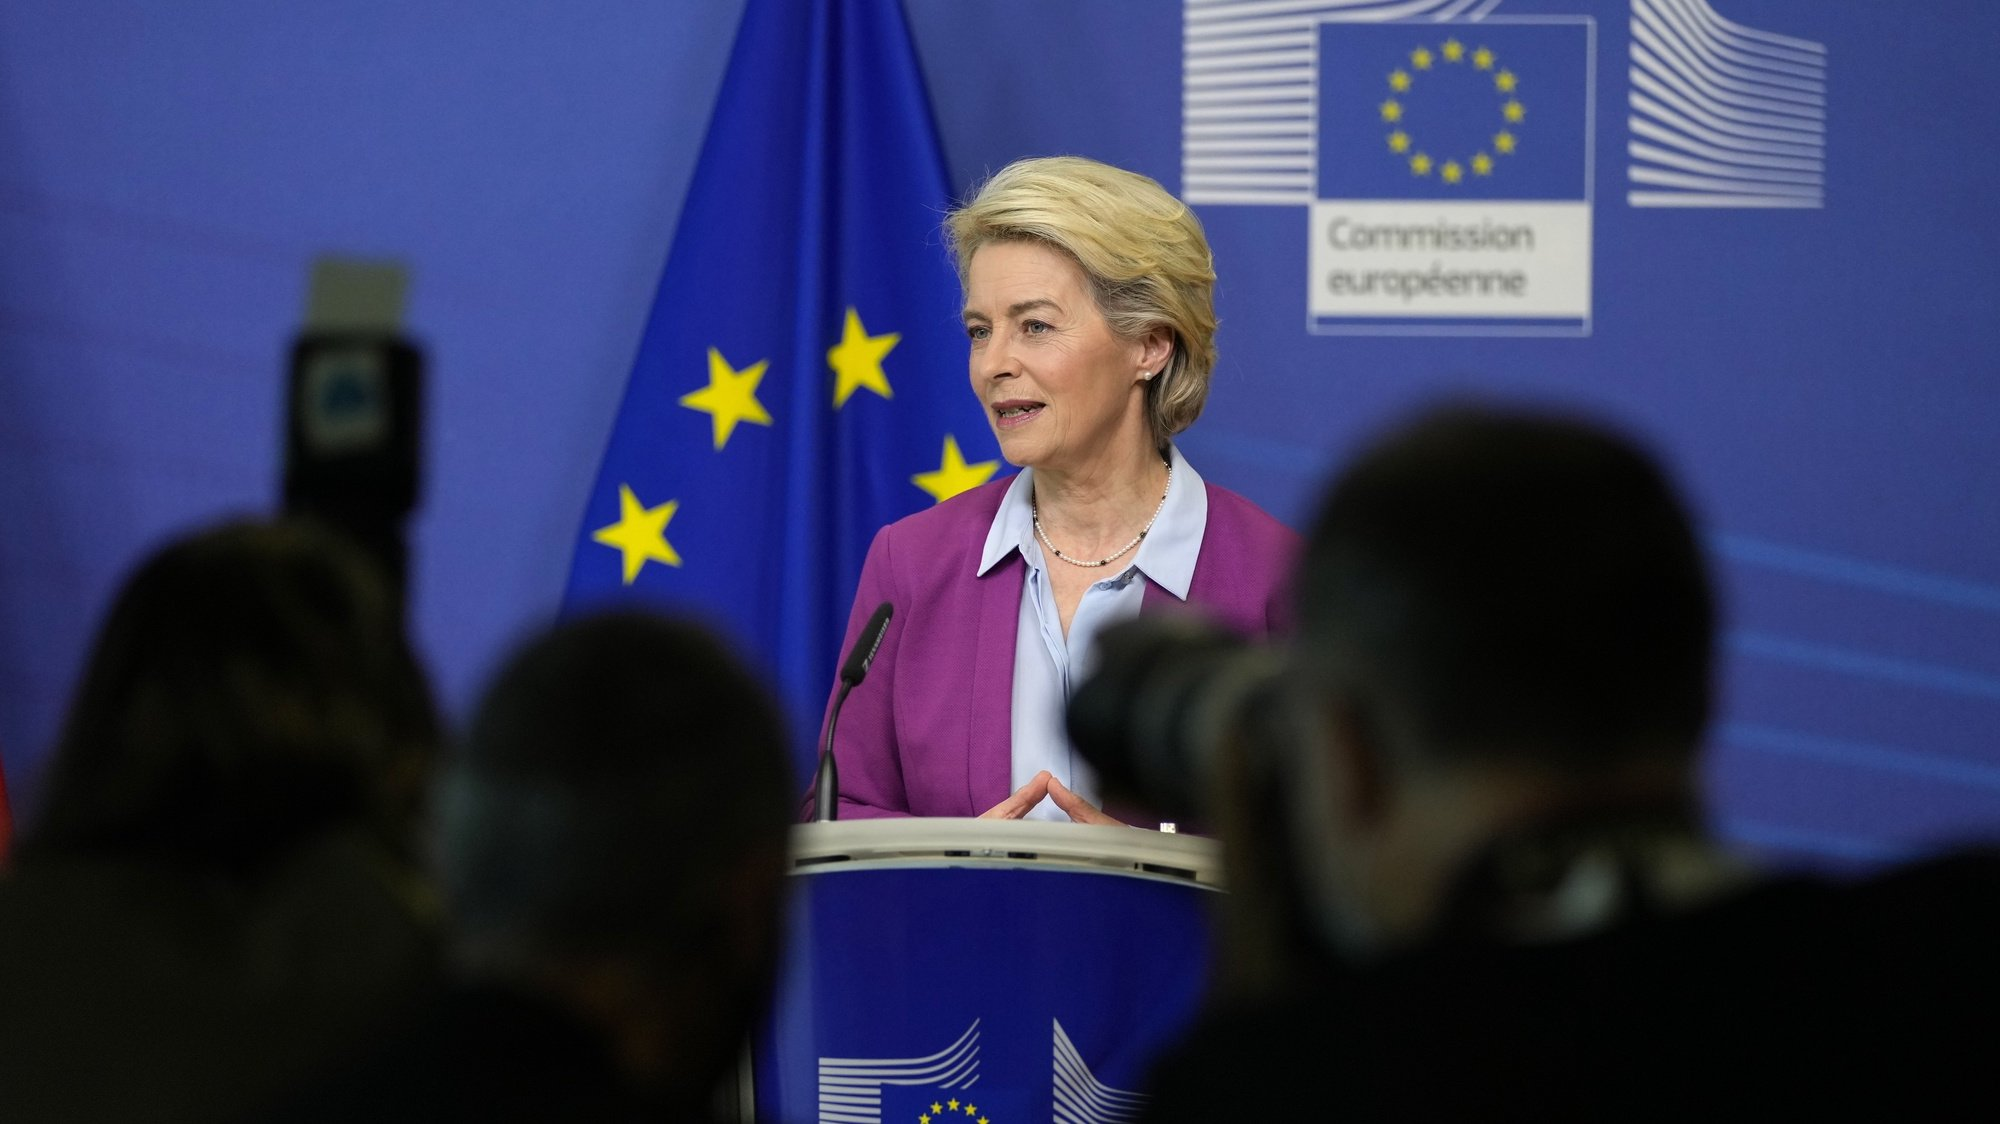 epa09523011 European Commission President Ursula von der Leyen speaks during a media statement with newly appointed Austria's Chancellor Schallenberg prior to a meeting at EU headquarters in Brussels, Belgium, 14 October 2021.  EPA/VIRGINIA MAYO / POOL